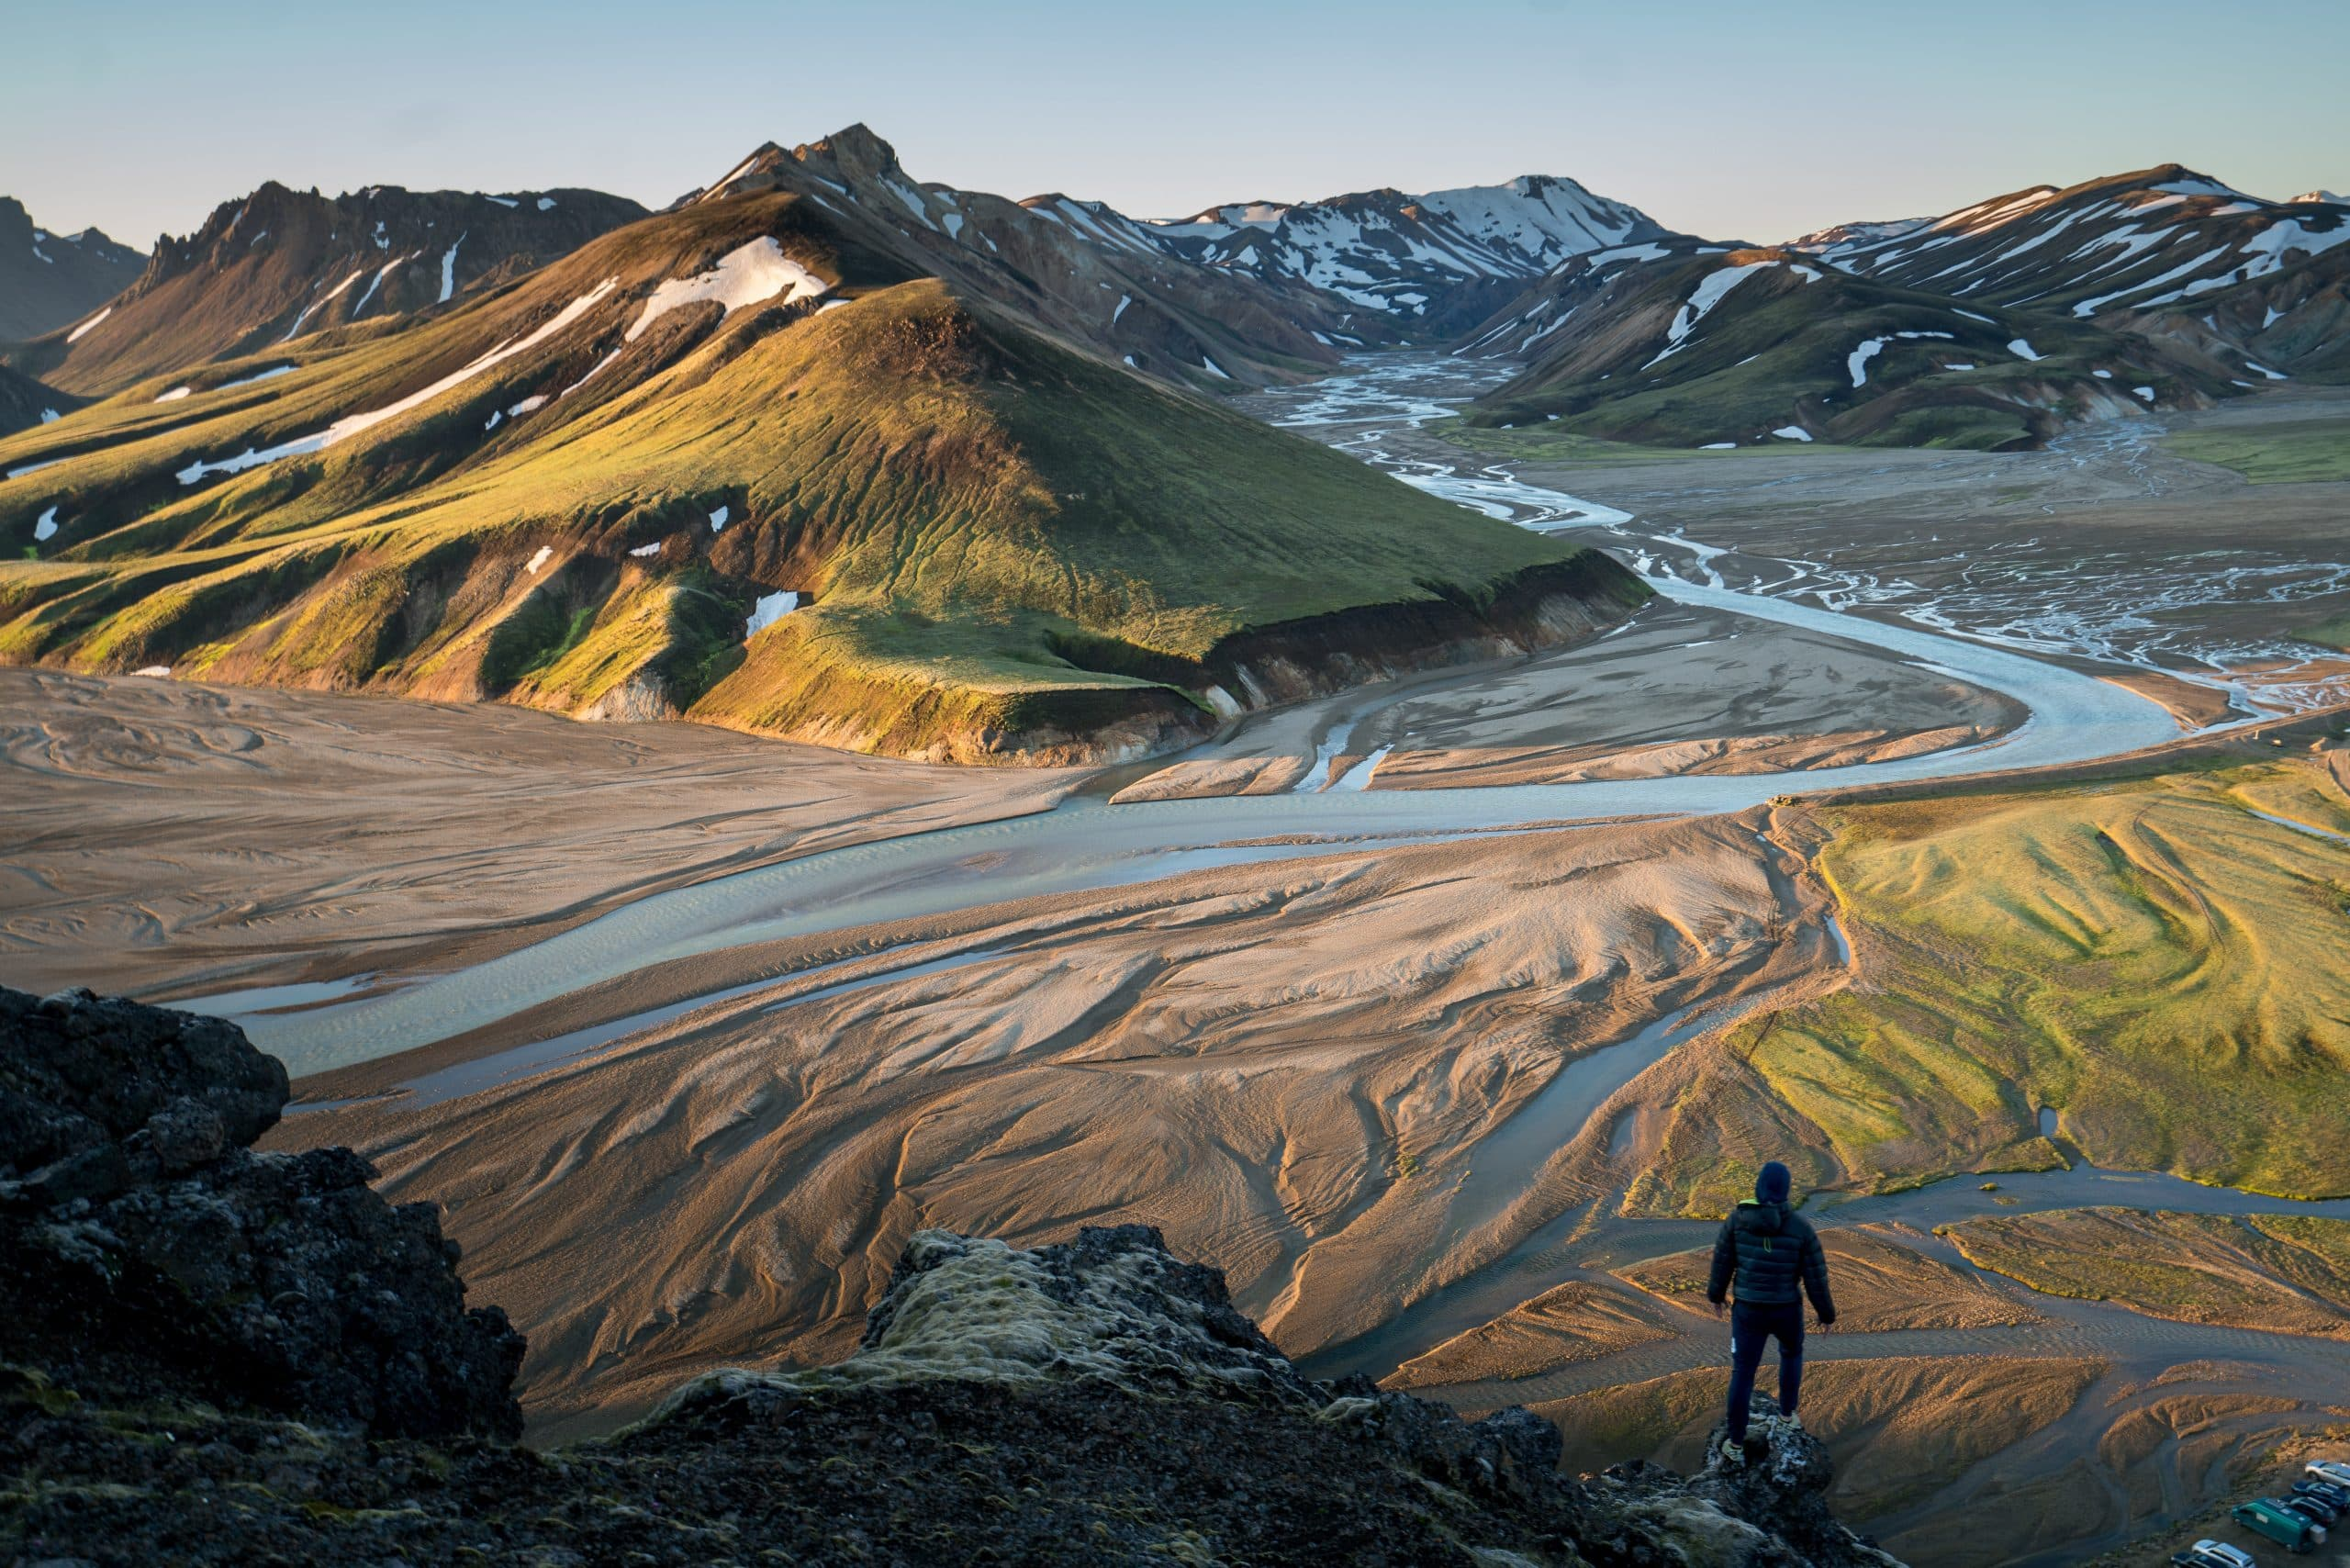 A view over a river at the Landmannalaugar Region in the Icelandic Highlands.